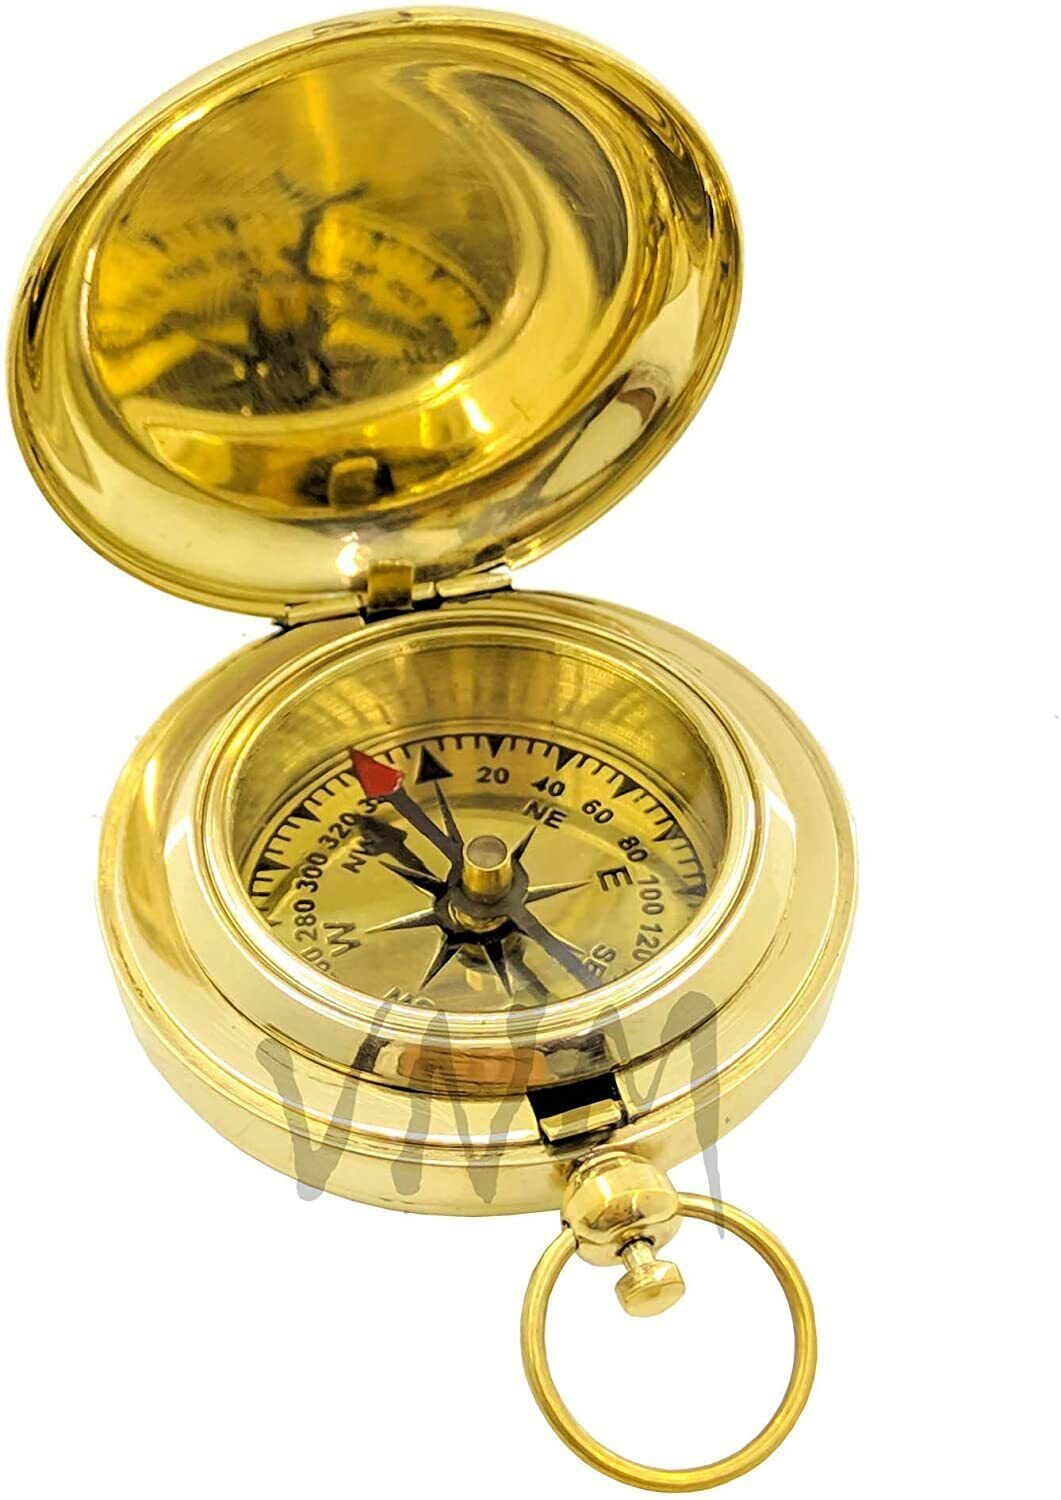 Collectible Vintage Pocket Golden Bass Compass for Hiking & Camping/Best Gift